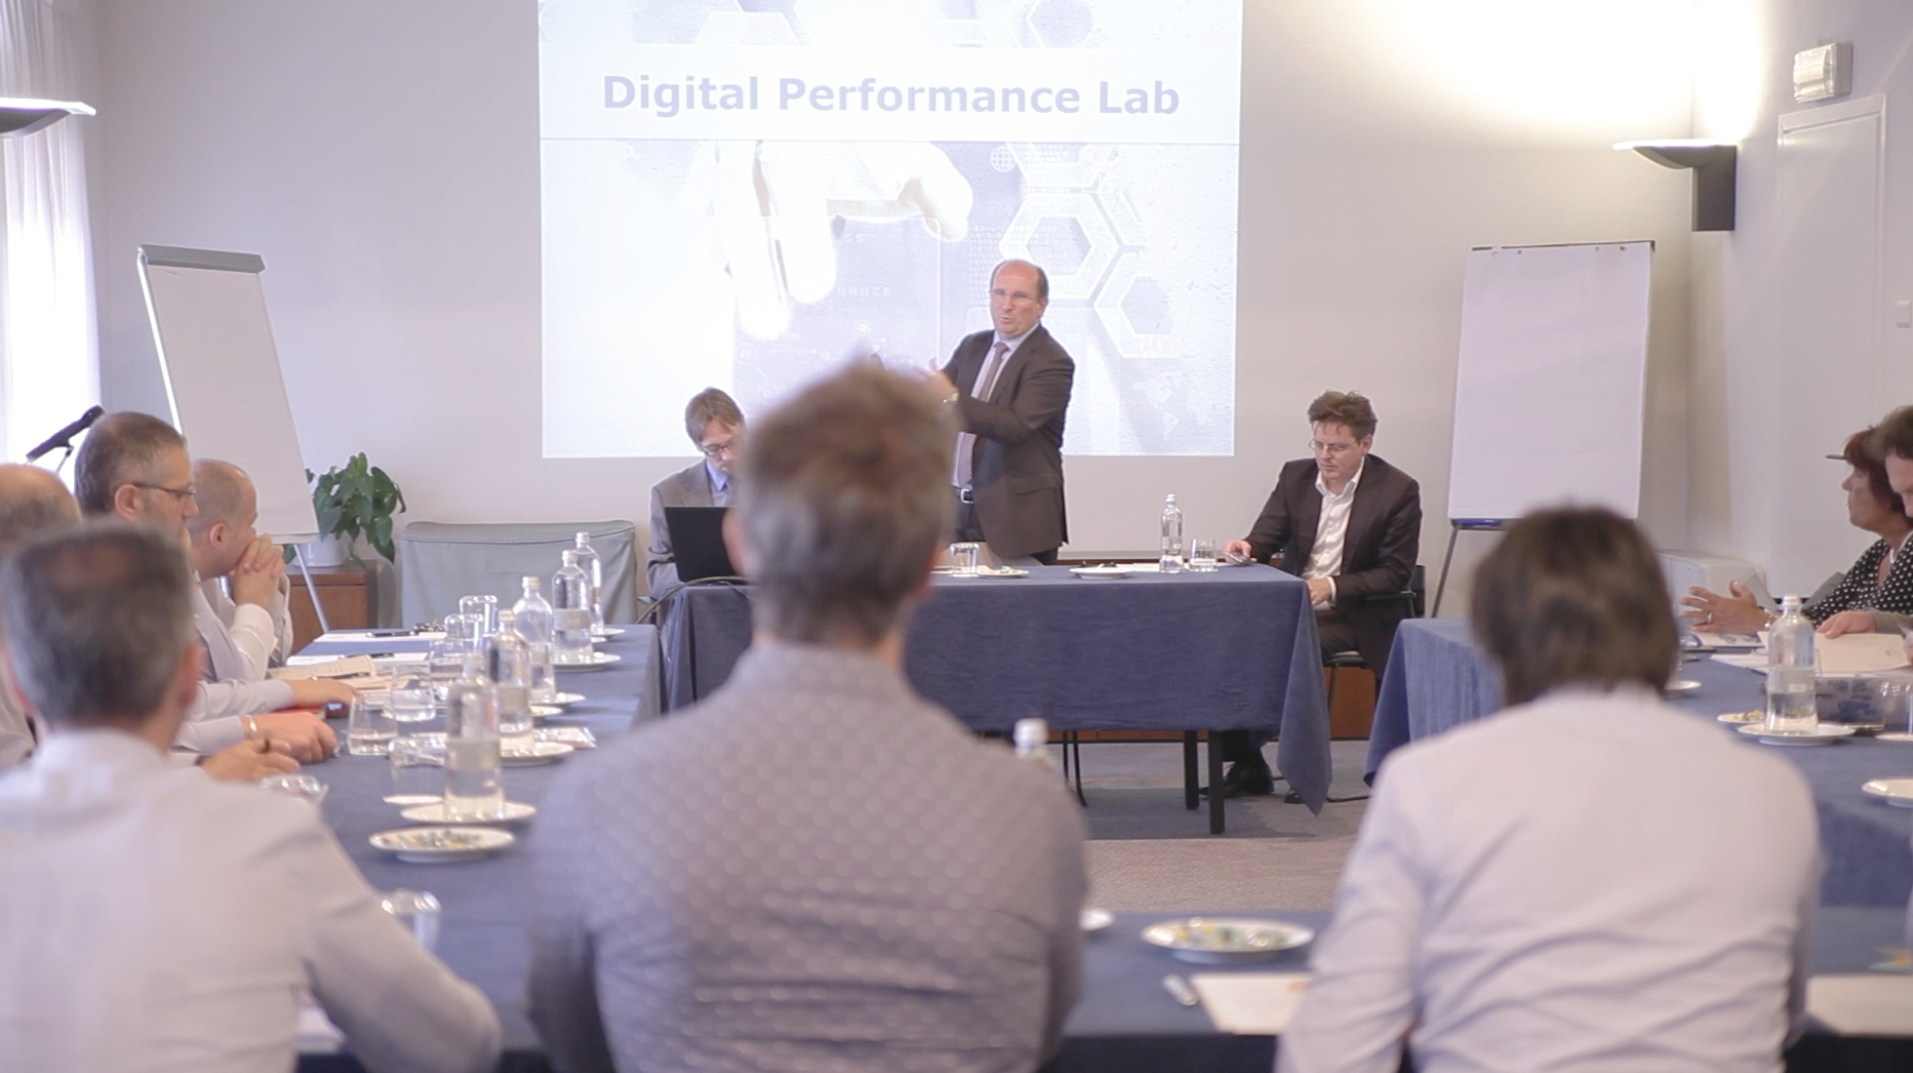 Giuseppe Pacotto, CEO di TESISQUARE, apre l'evento Digital Performance Lab